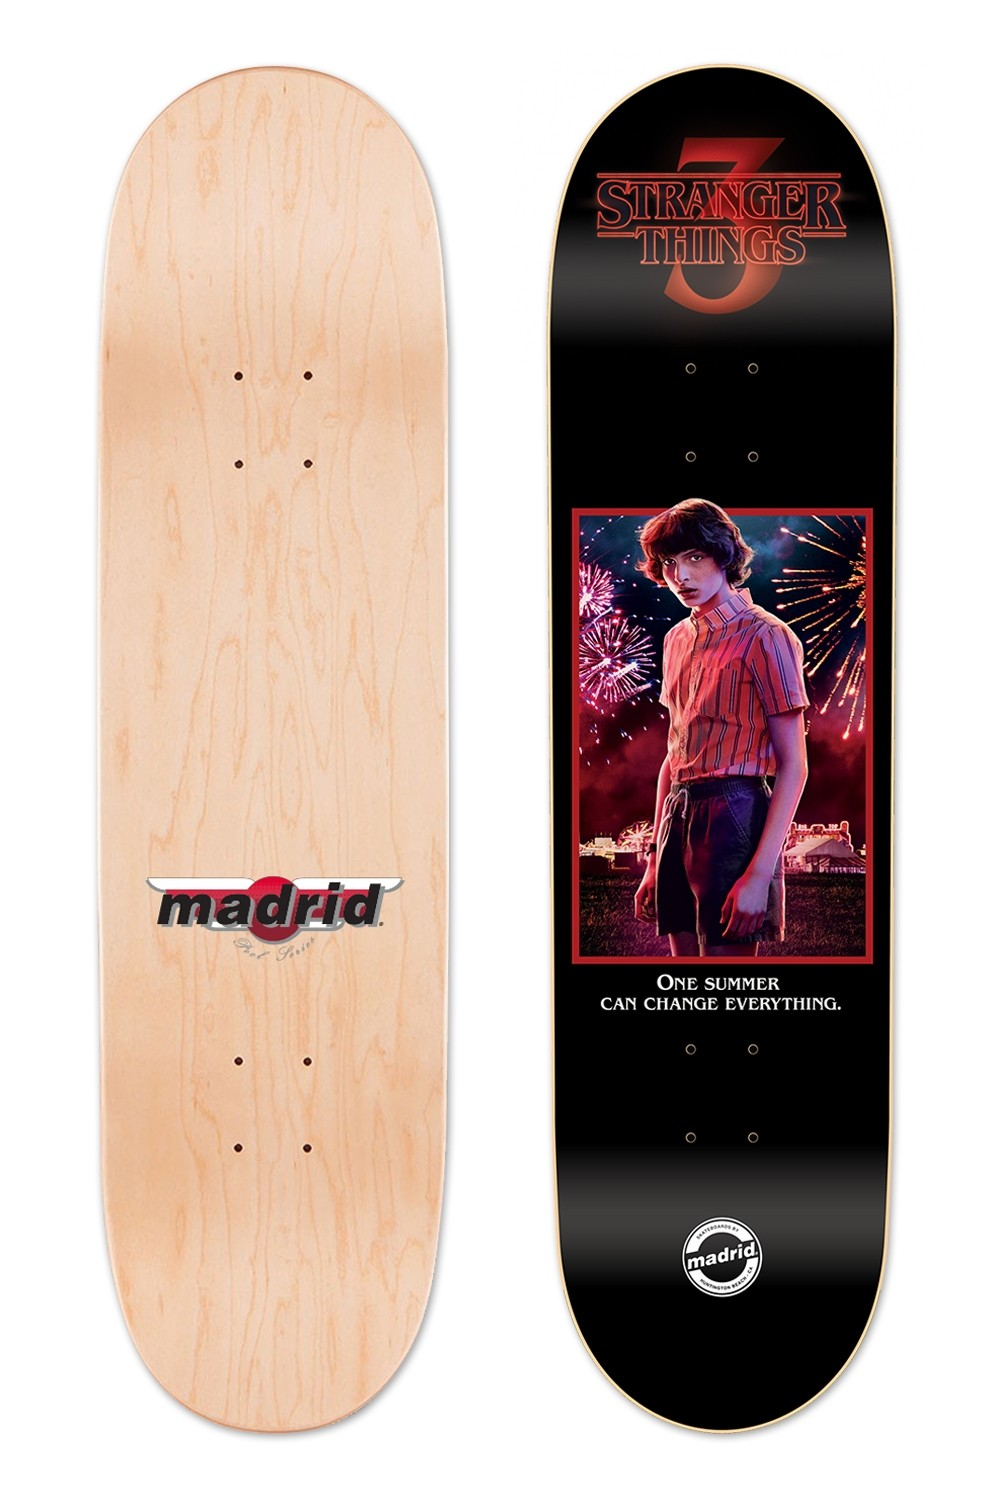 Madrid x Stranger Things Mike Street Deck - PRE ORDER